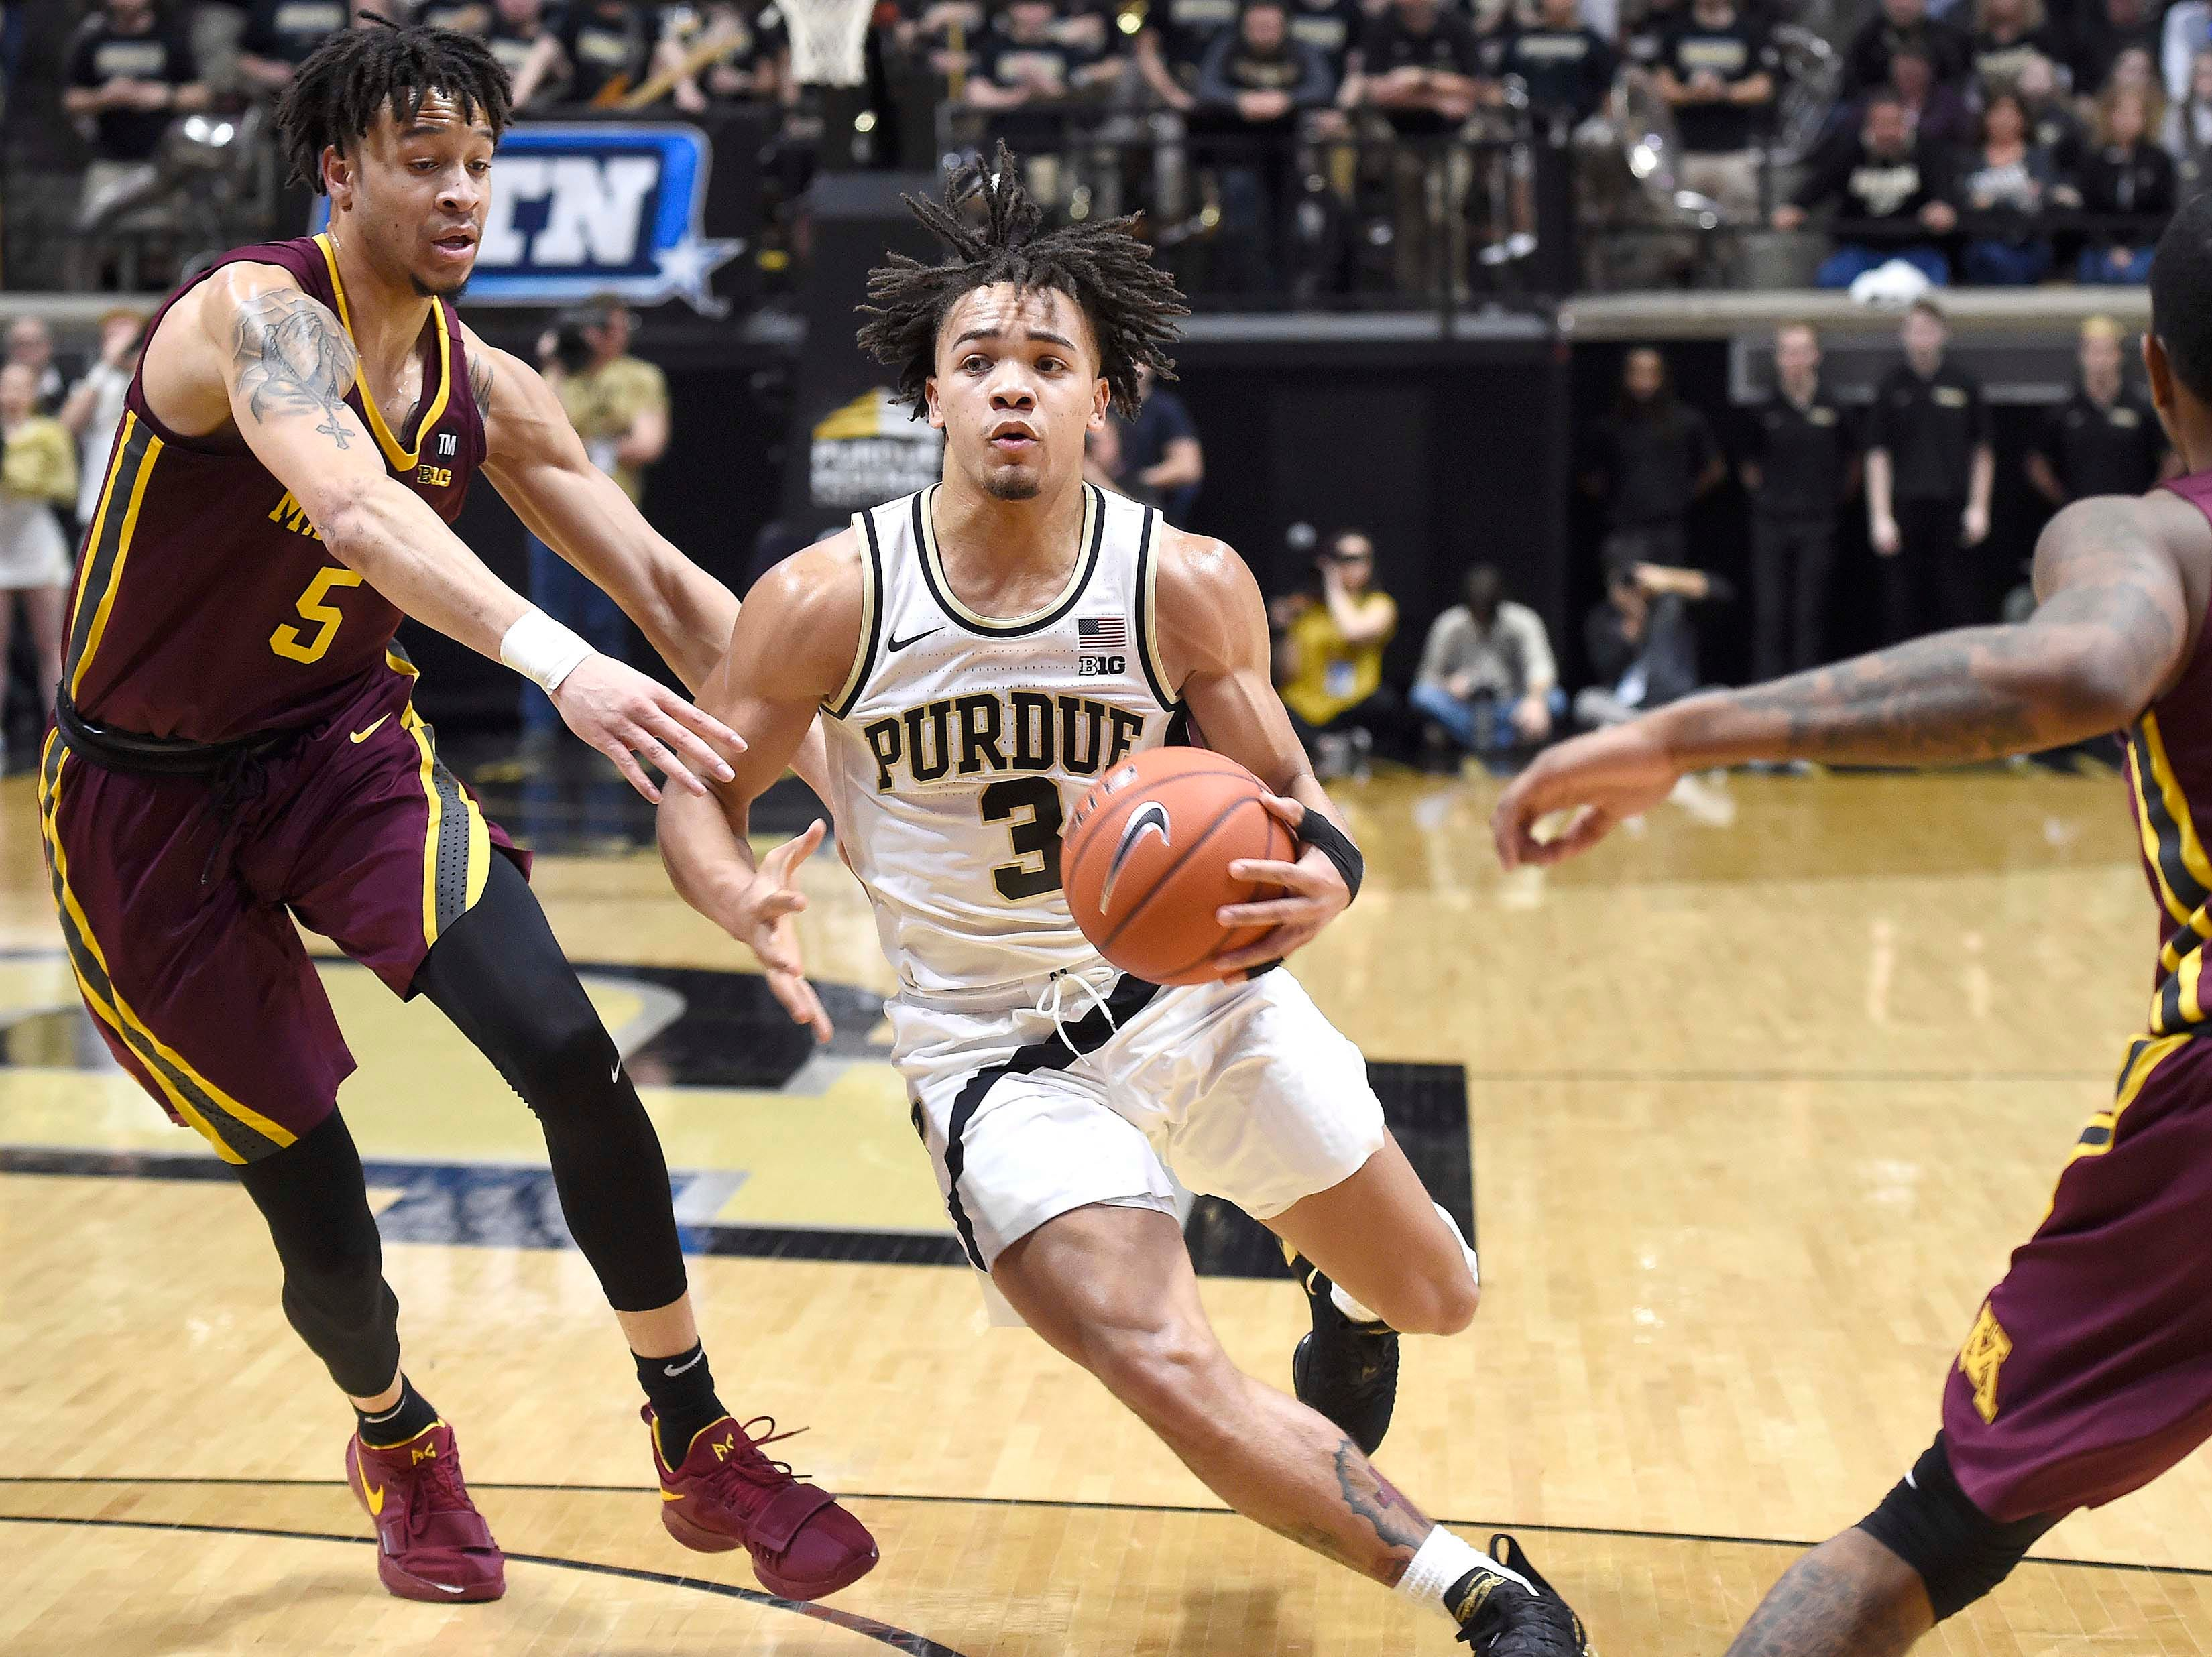 Feb 3, 2019; West Lafayette, IN, USA; Purdue Boilermakers guard Carsen Edwards (3) drives past Minnesota Golden Gophers guard Amir Coffey (5) in the 2nd half at Mackey Arena. Mandatory Credit: Sandra Dukes-USA TODAY Sports